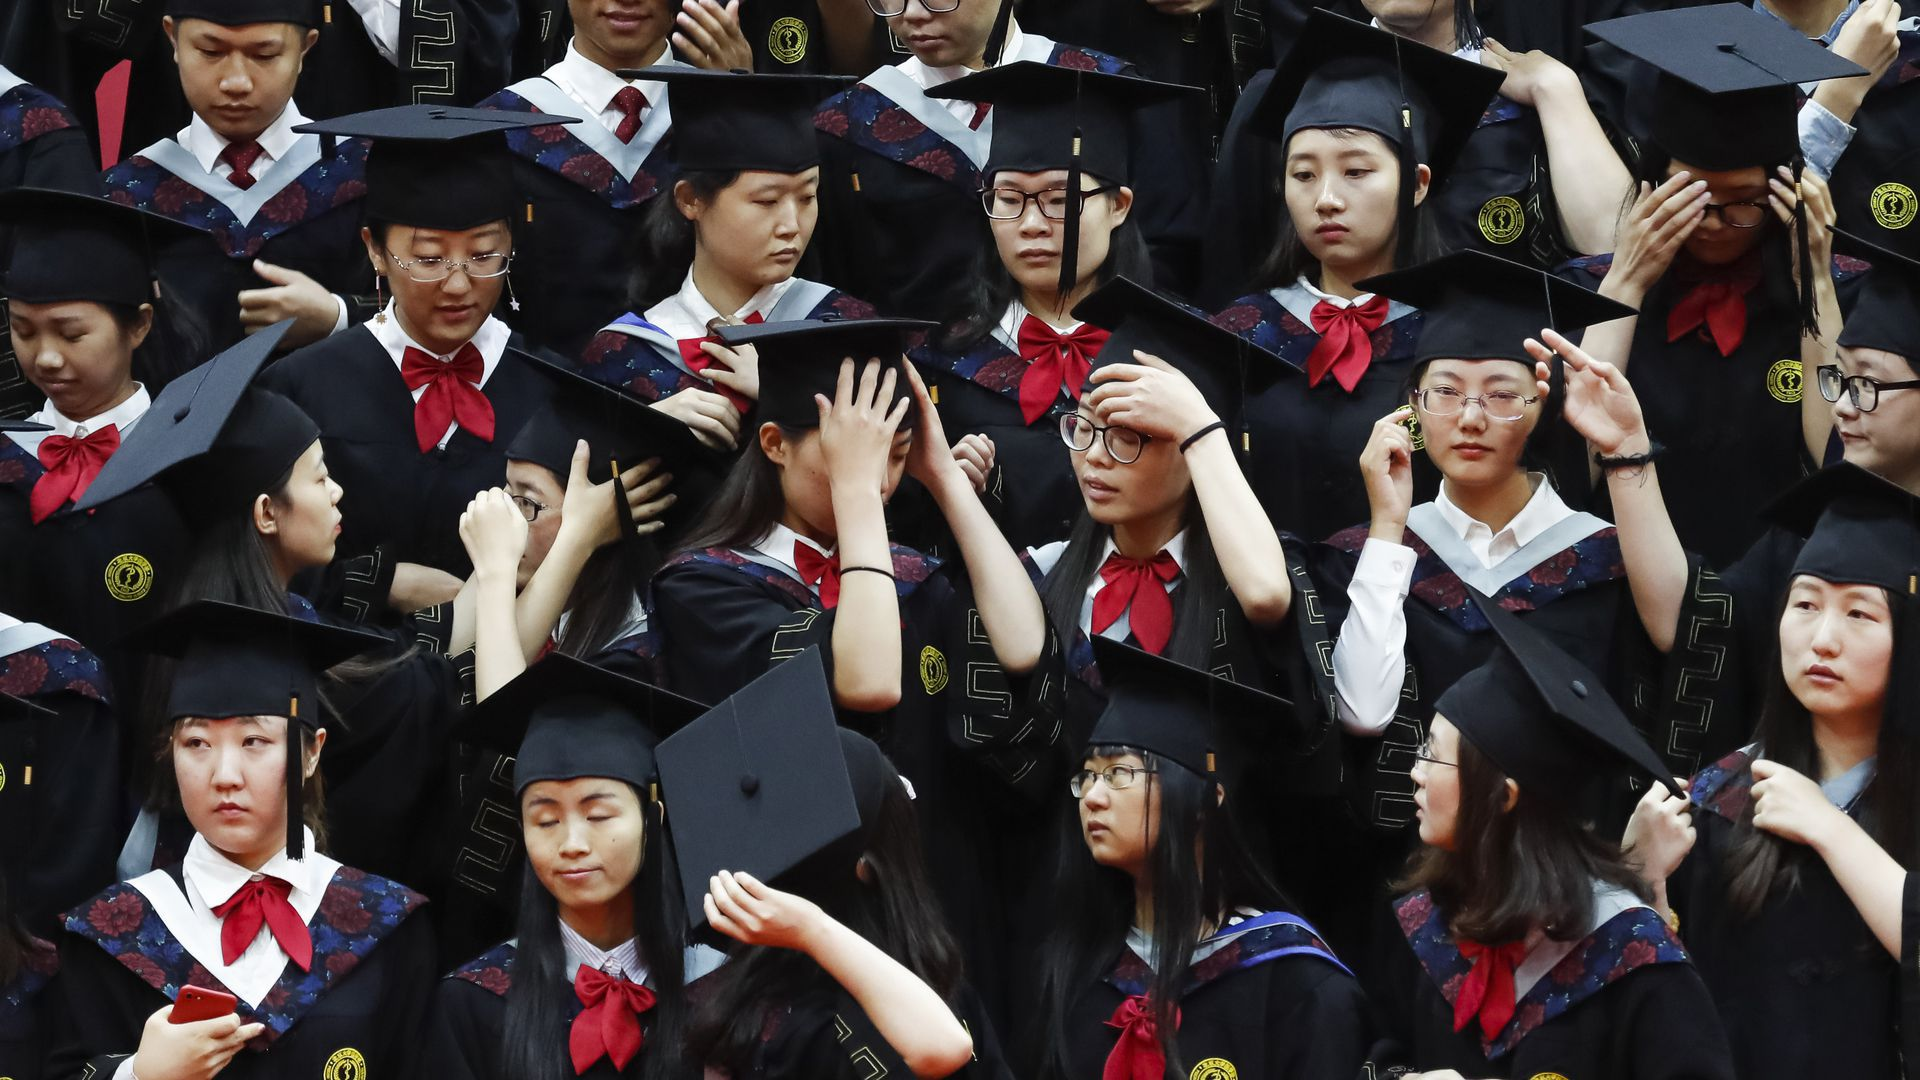 Students graduating university from Peking University.